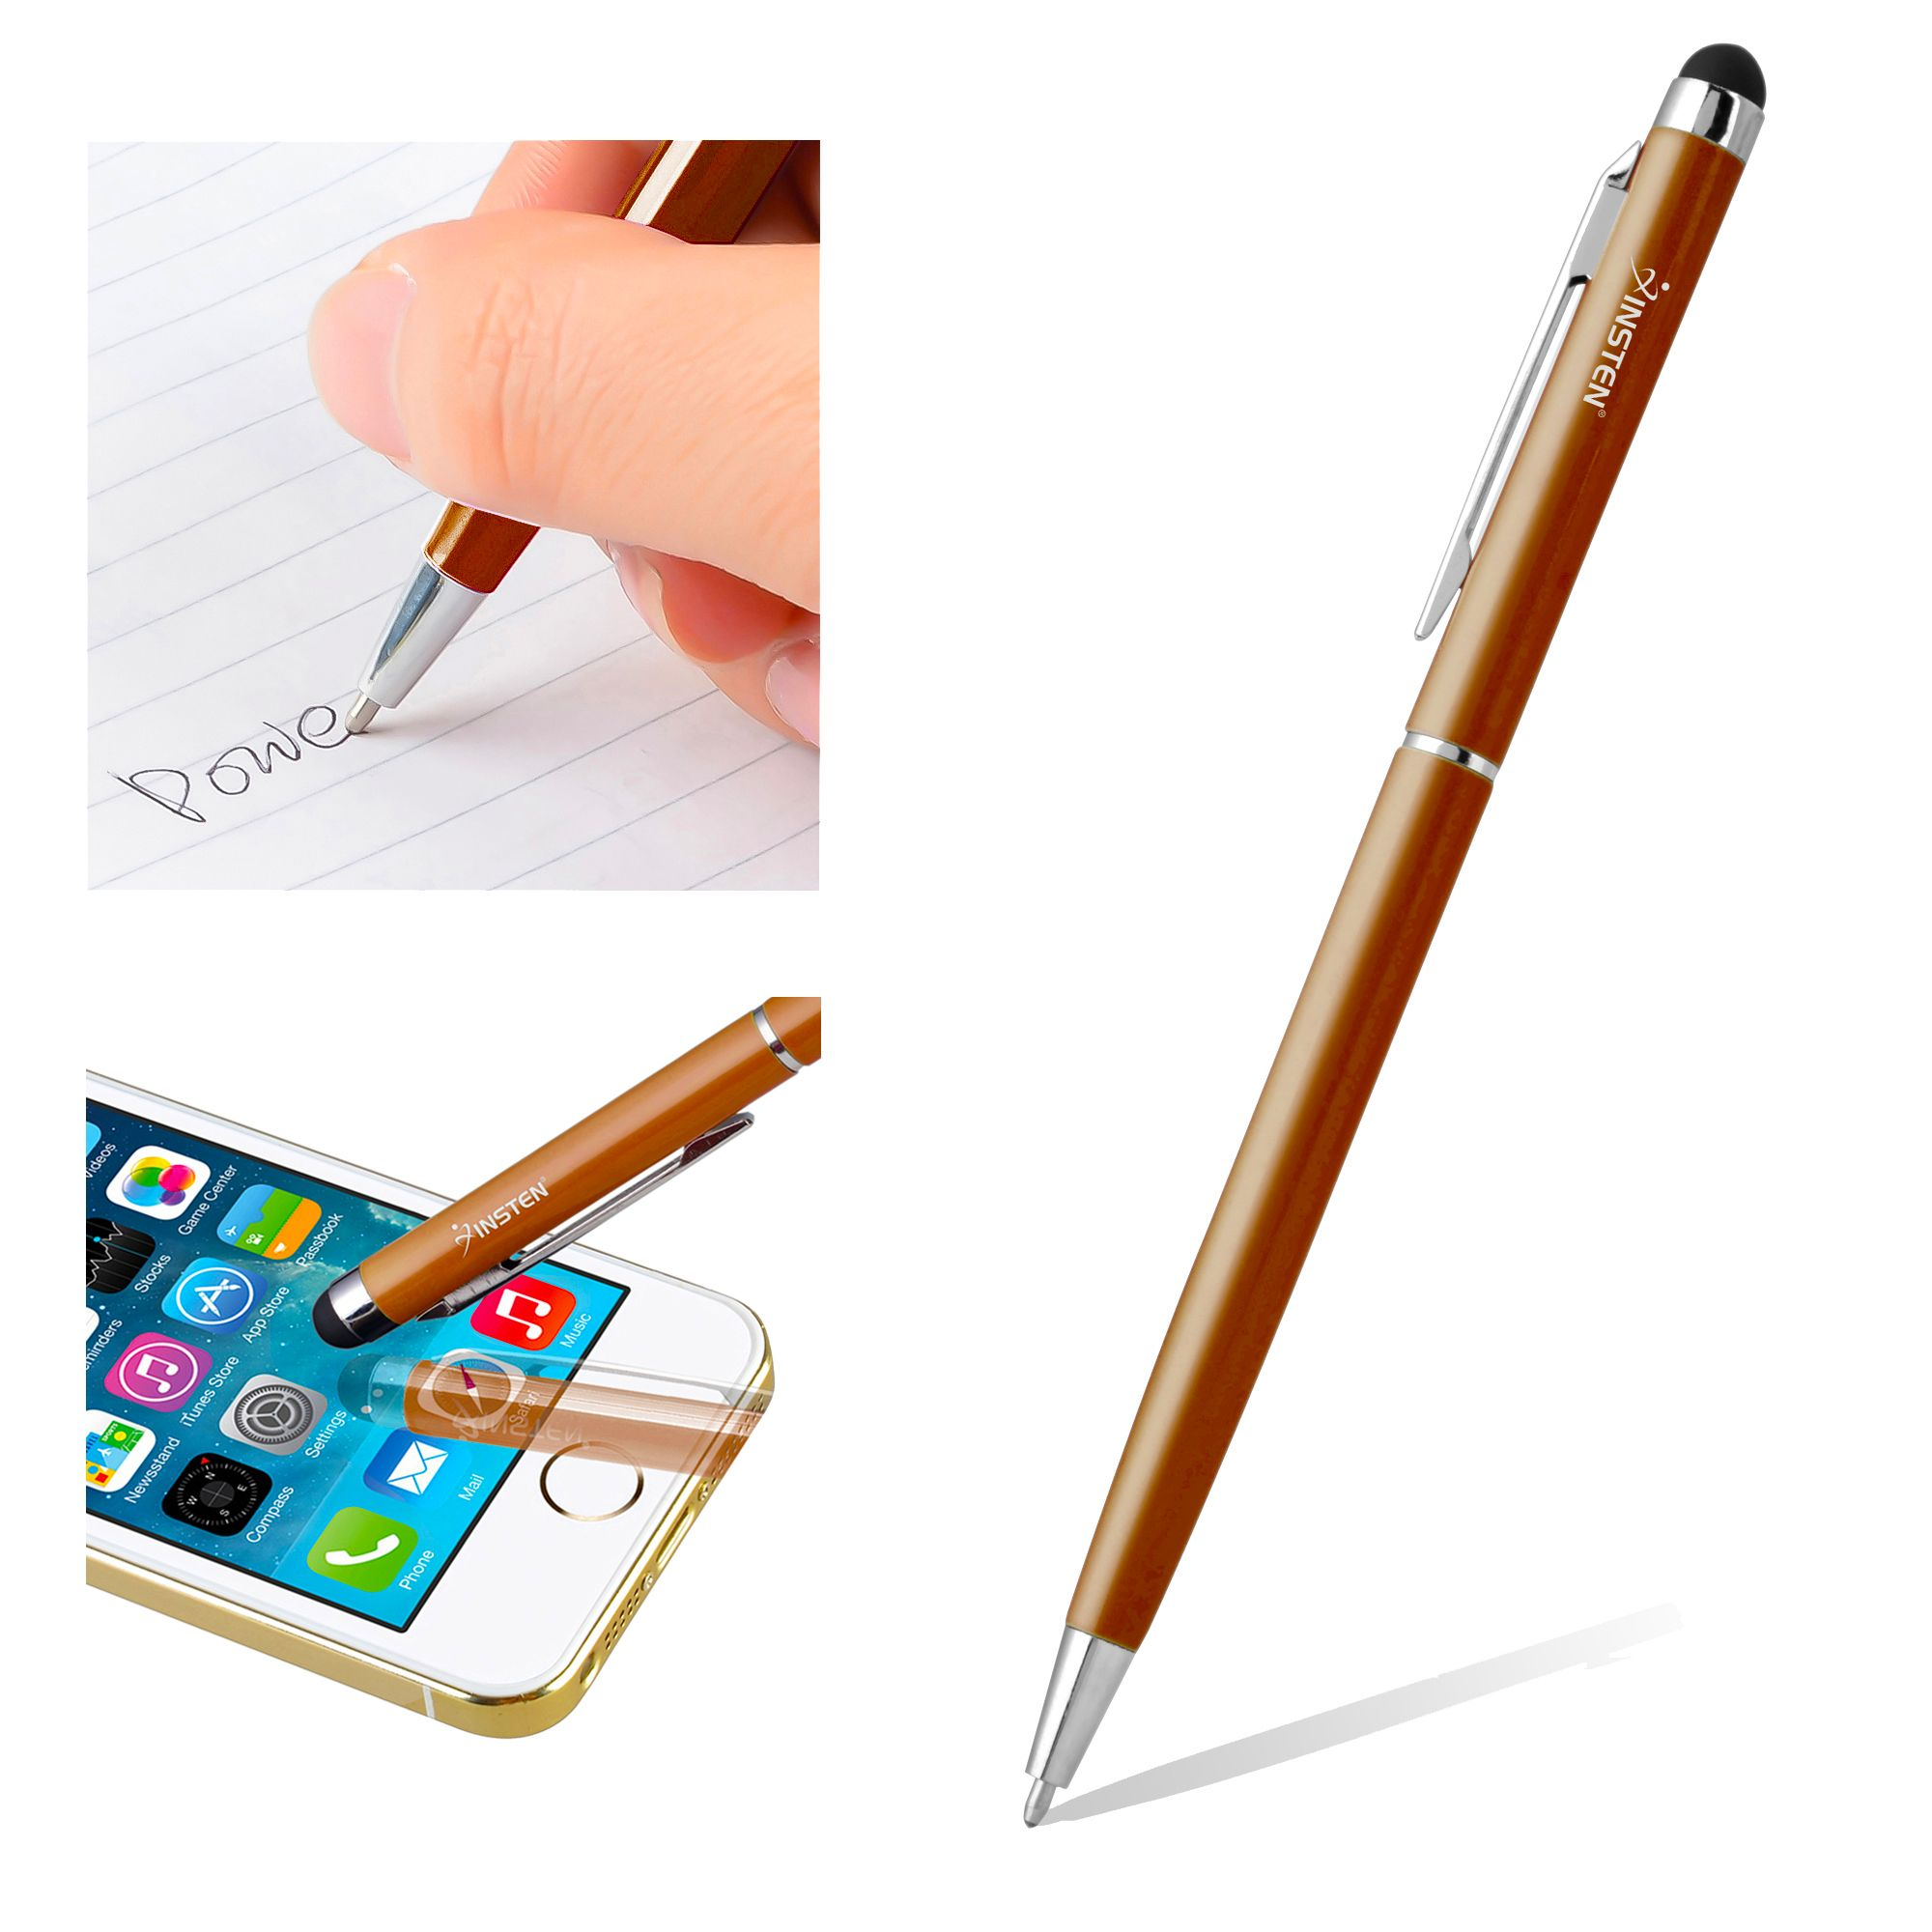 Insten Orange 2in1 Capacitive Touch Screen Stylus with Ball Point Pen for iPhone 7 8 XS XS Max XR X Samsung Galaxy Tab 3 4 Pro S9 S9+ Plus S8 S8+ Note 8 5 J7 RCA iView Ematic Huawei Media Pad LG G Pad